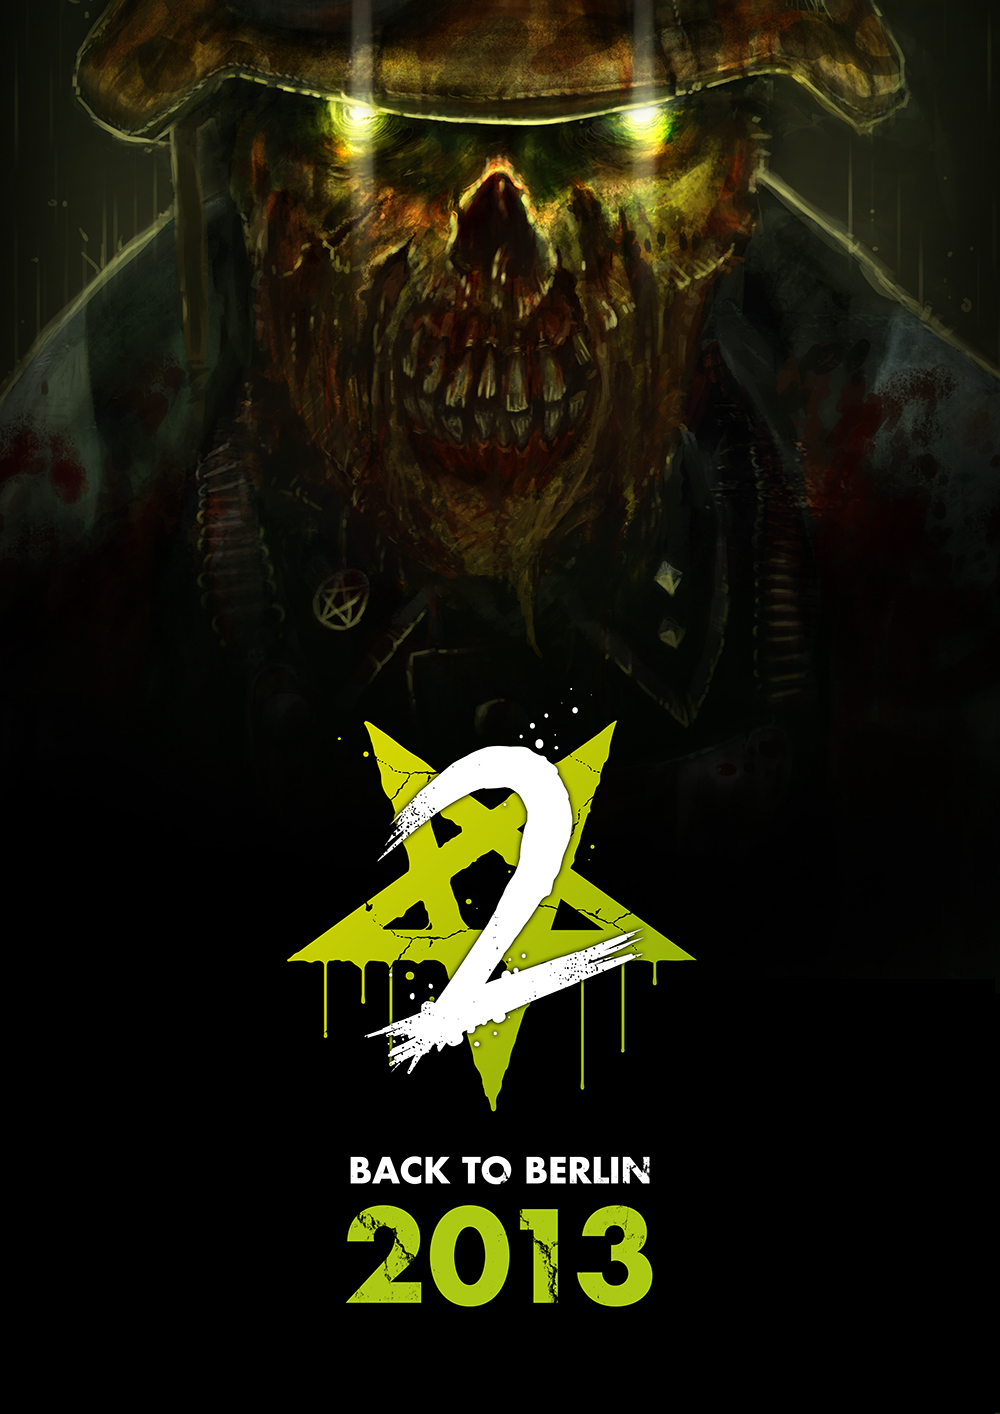 nza2-back_to_berlin_v2